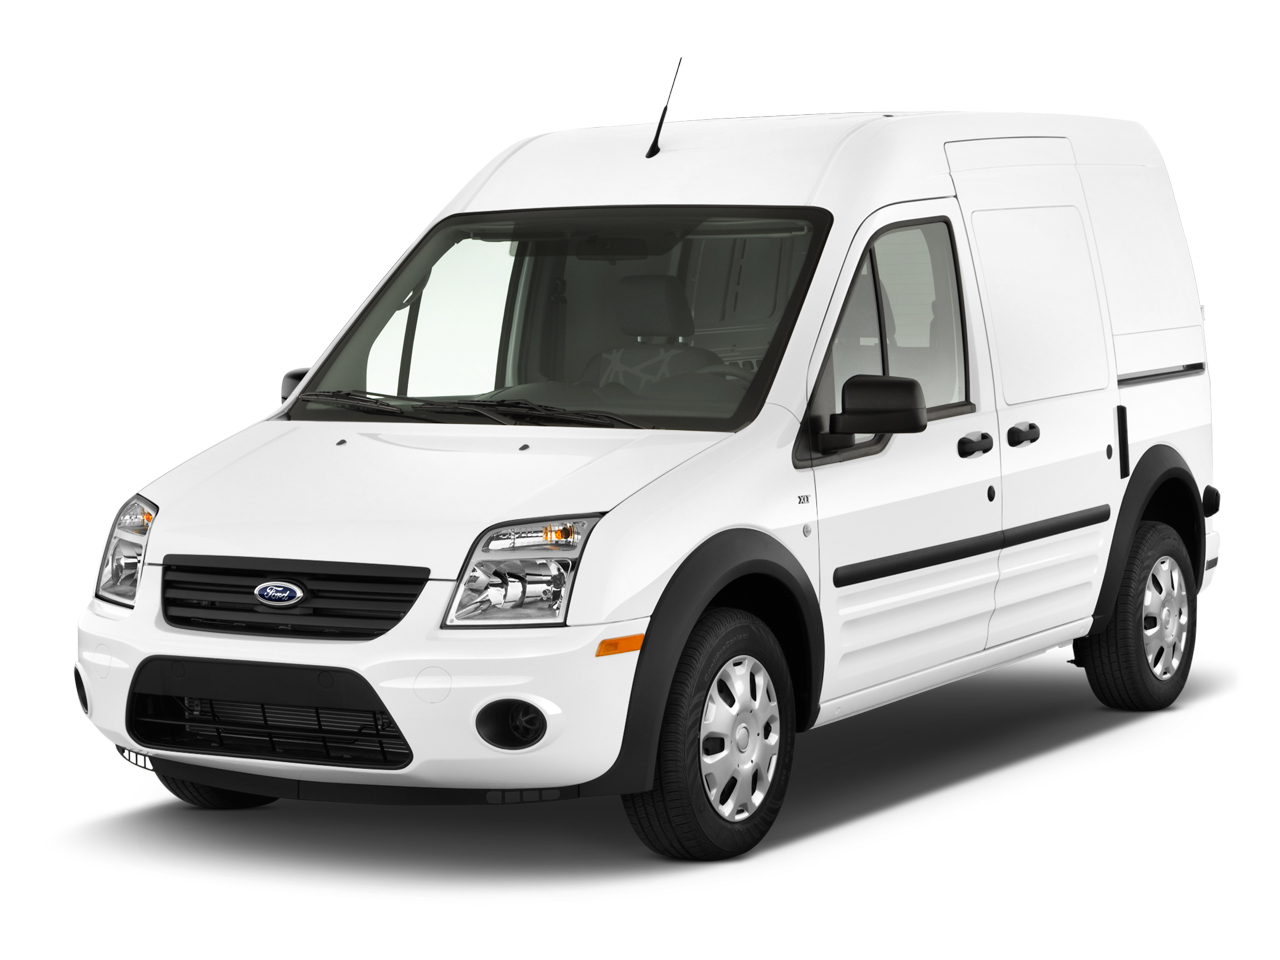 2010 ford transit connect review ratings specs prices and photos the car connection. Black Bedroom Furniture Sets. Home Design Ideas